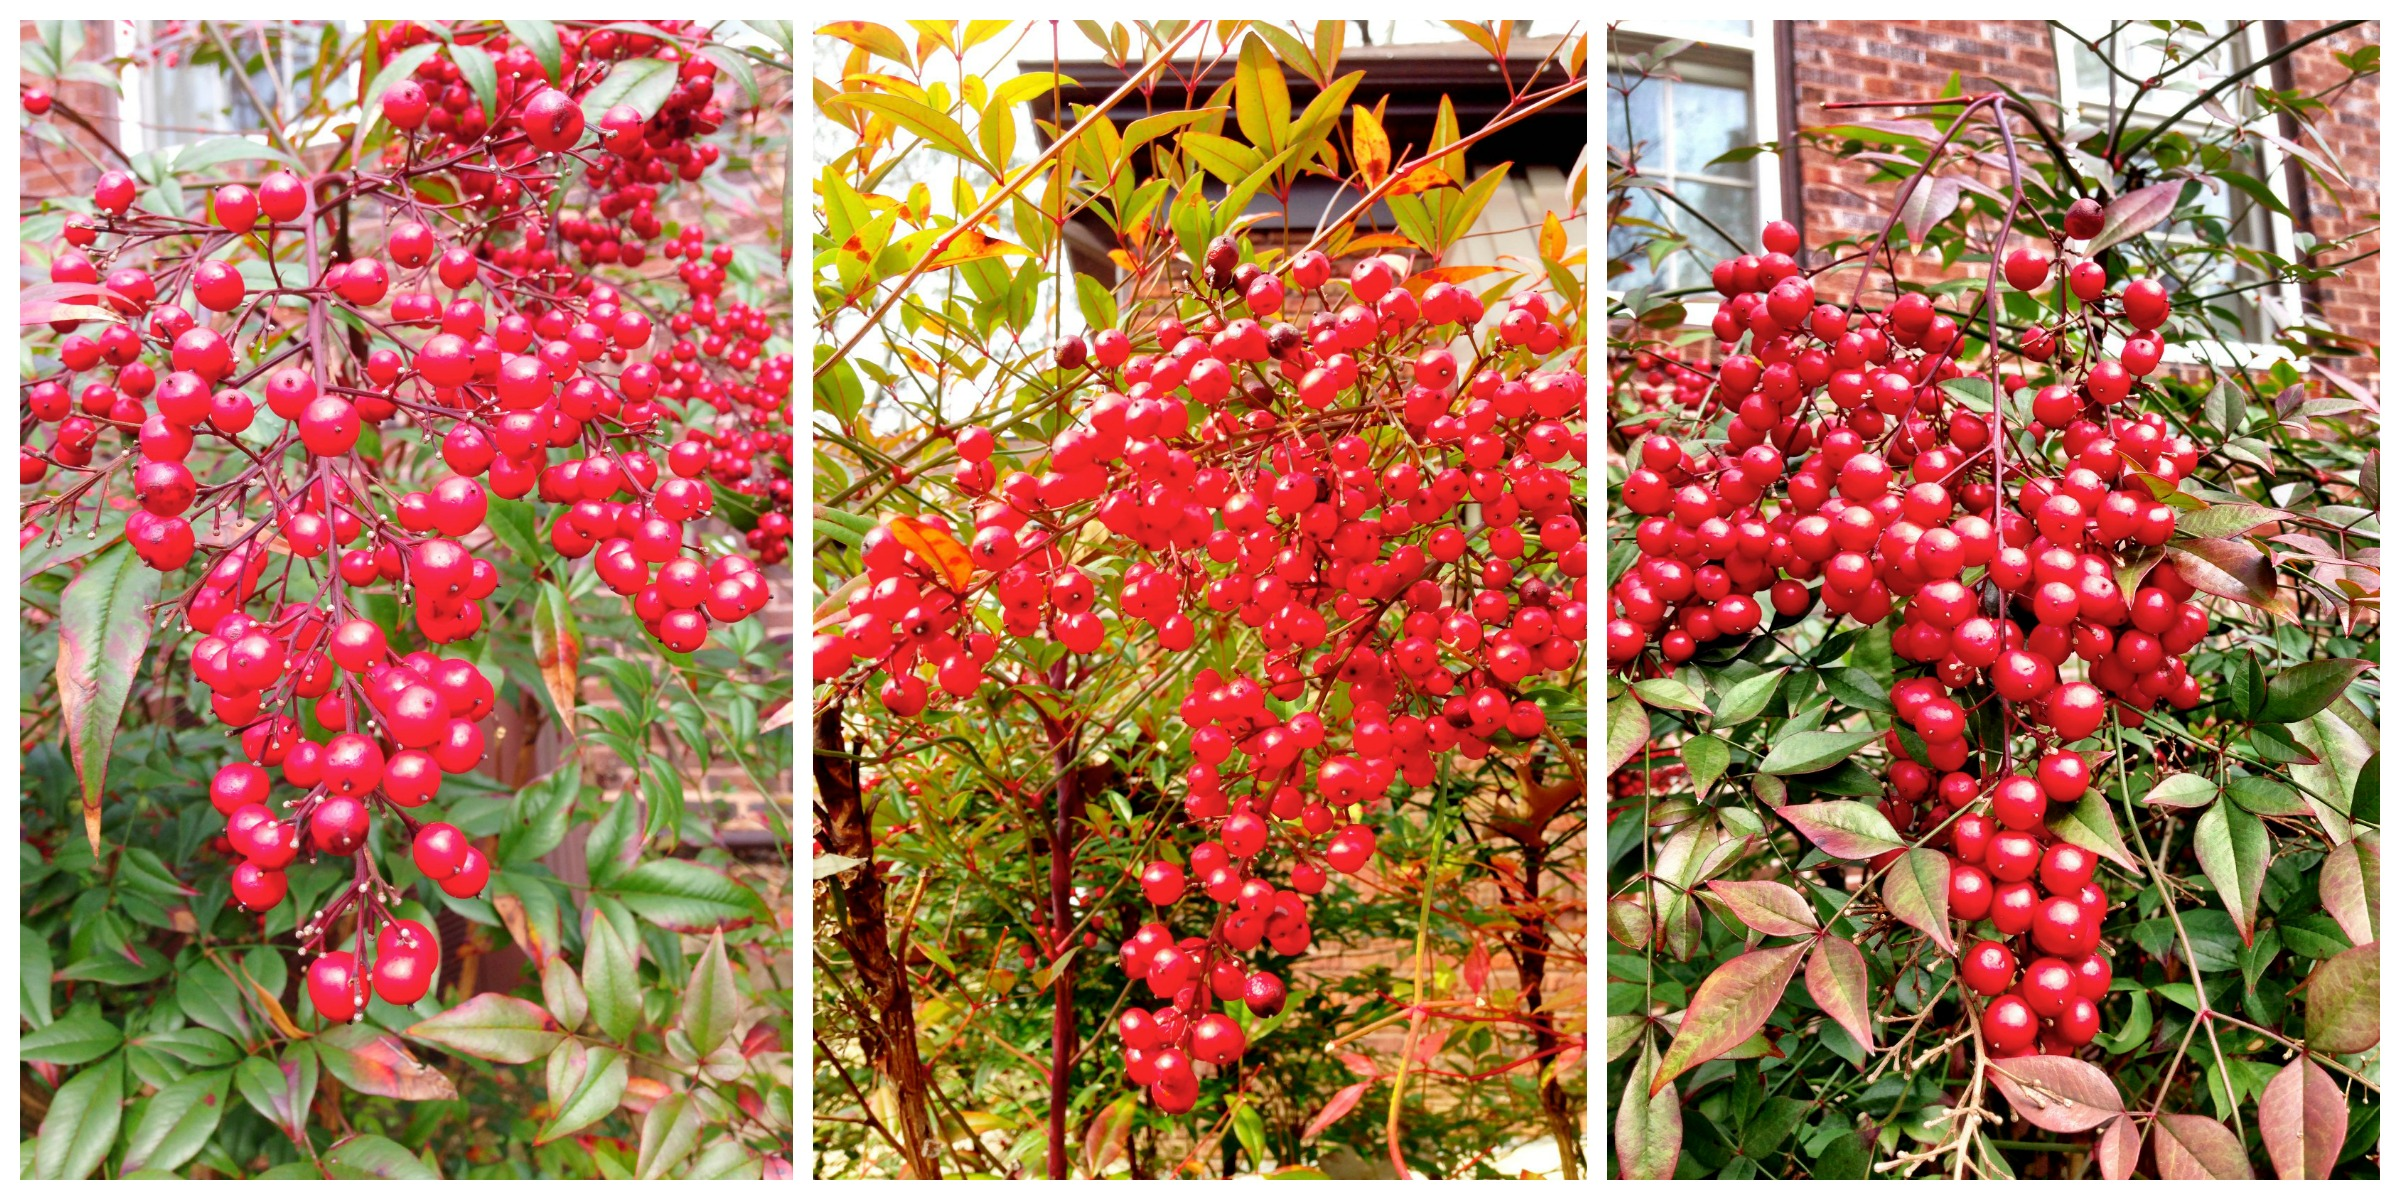 Nandina berries in the Eudora Welty garden